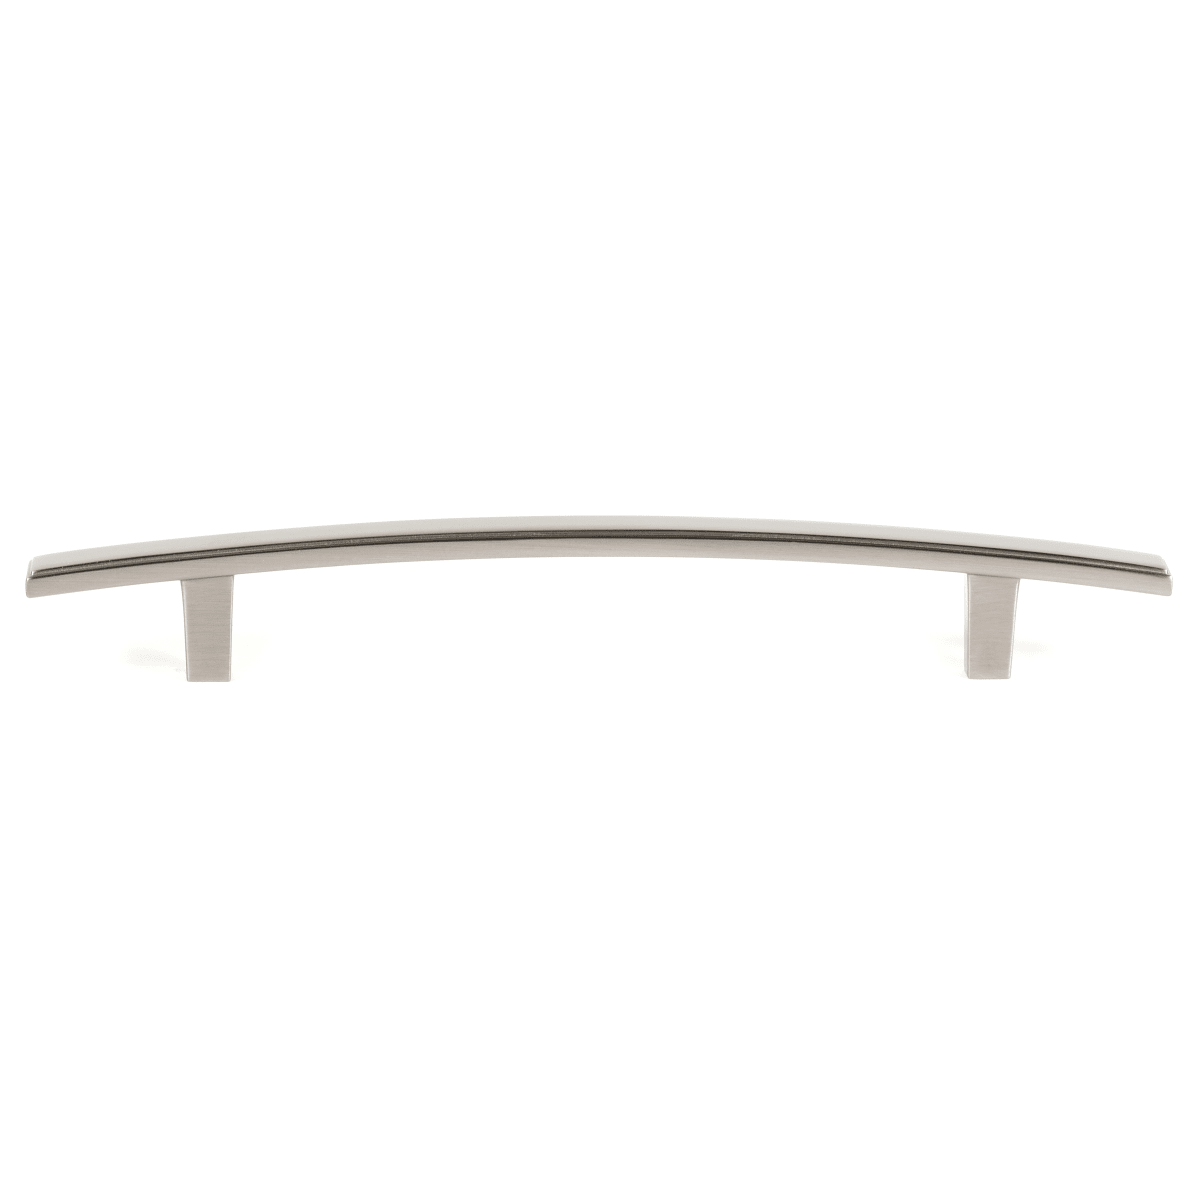 Alno Arch 6 Inch Center to Center Bar Cabinet Pull